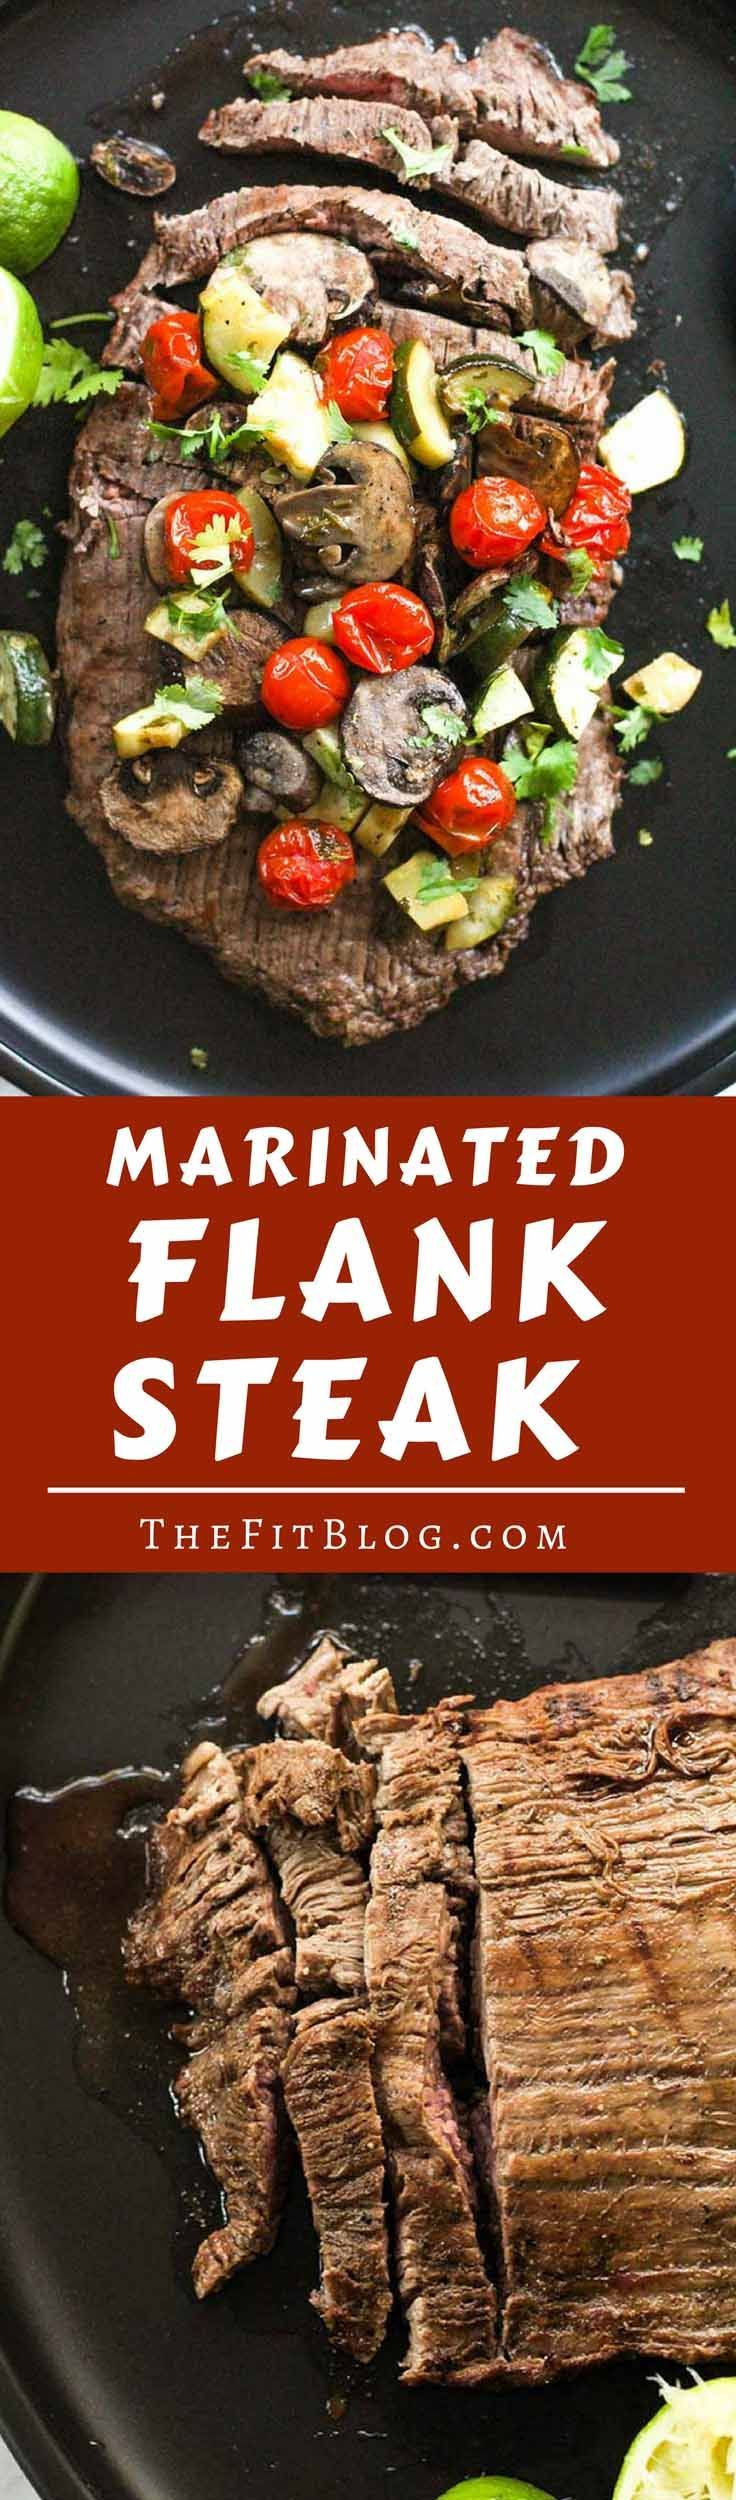 This Marinated Flank Steak with Roasted Mushrooms, Tomatoes, and Zucchini is perfect for any time of the year. Super juicy and flavorful! (high protein, low carb, sugar free, gluten free, diabetes friendly, Paleo, Whole 30) via @TheFitBlog